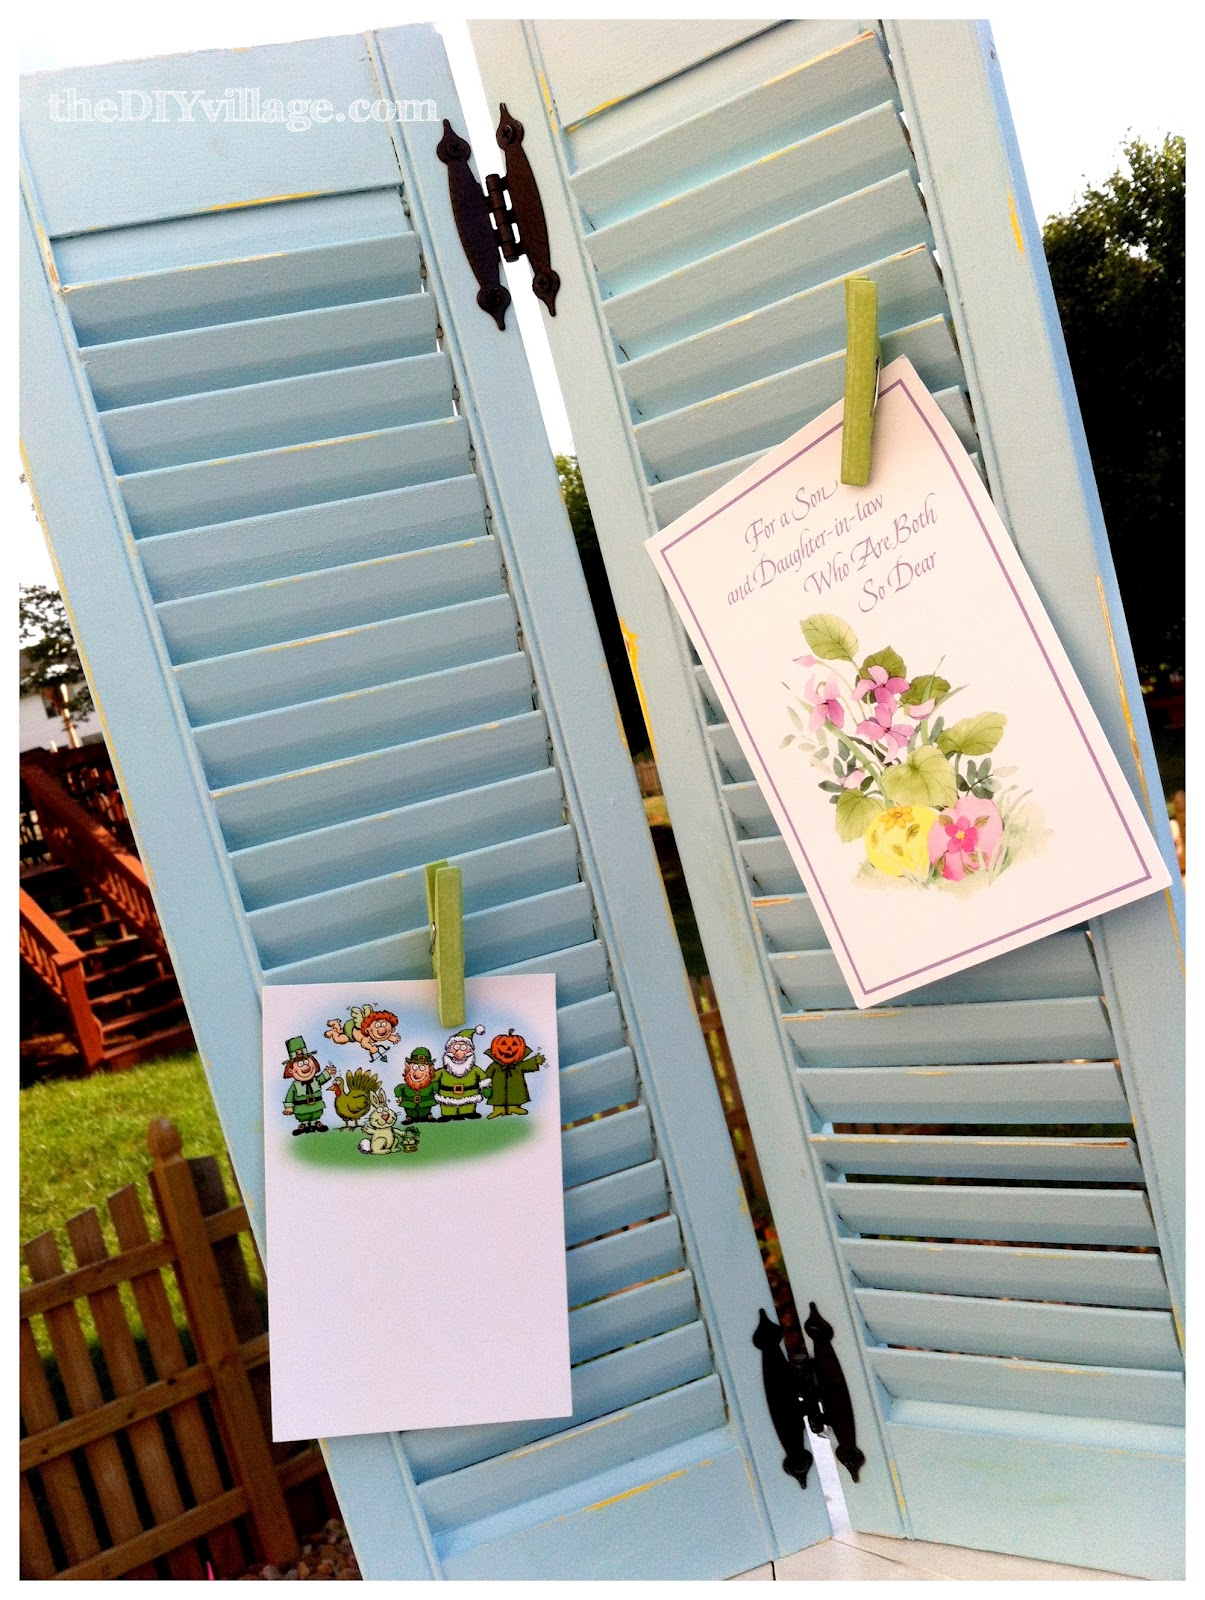 Diy greeting card display repurposed shutters the diy village old shutters m4hsunfo